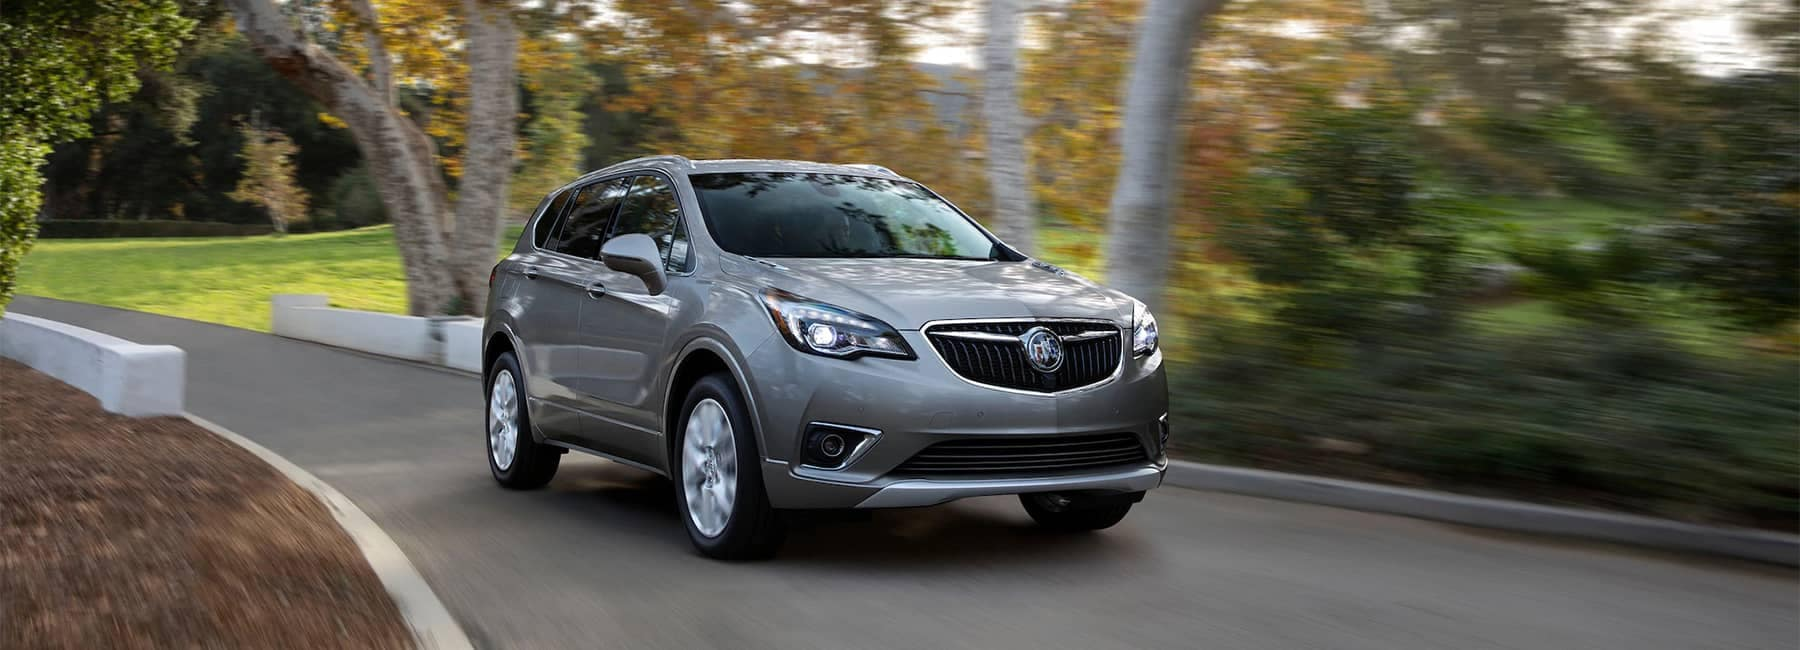 2020 Buick Envision Compact SUV Driving Front Side Exterior